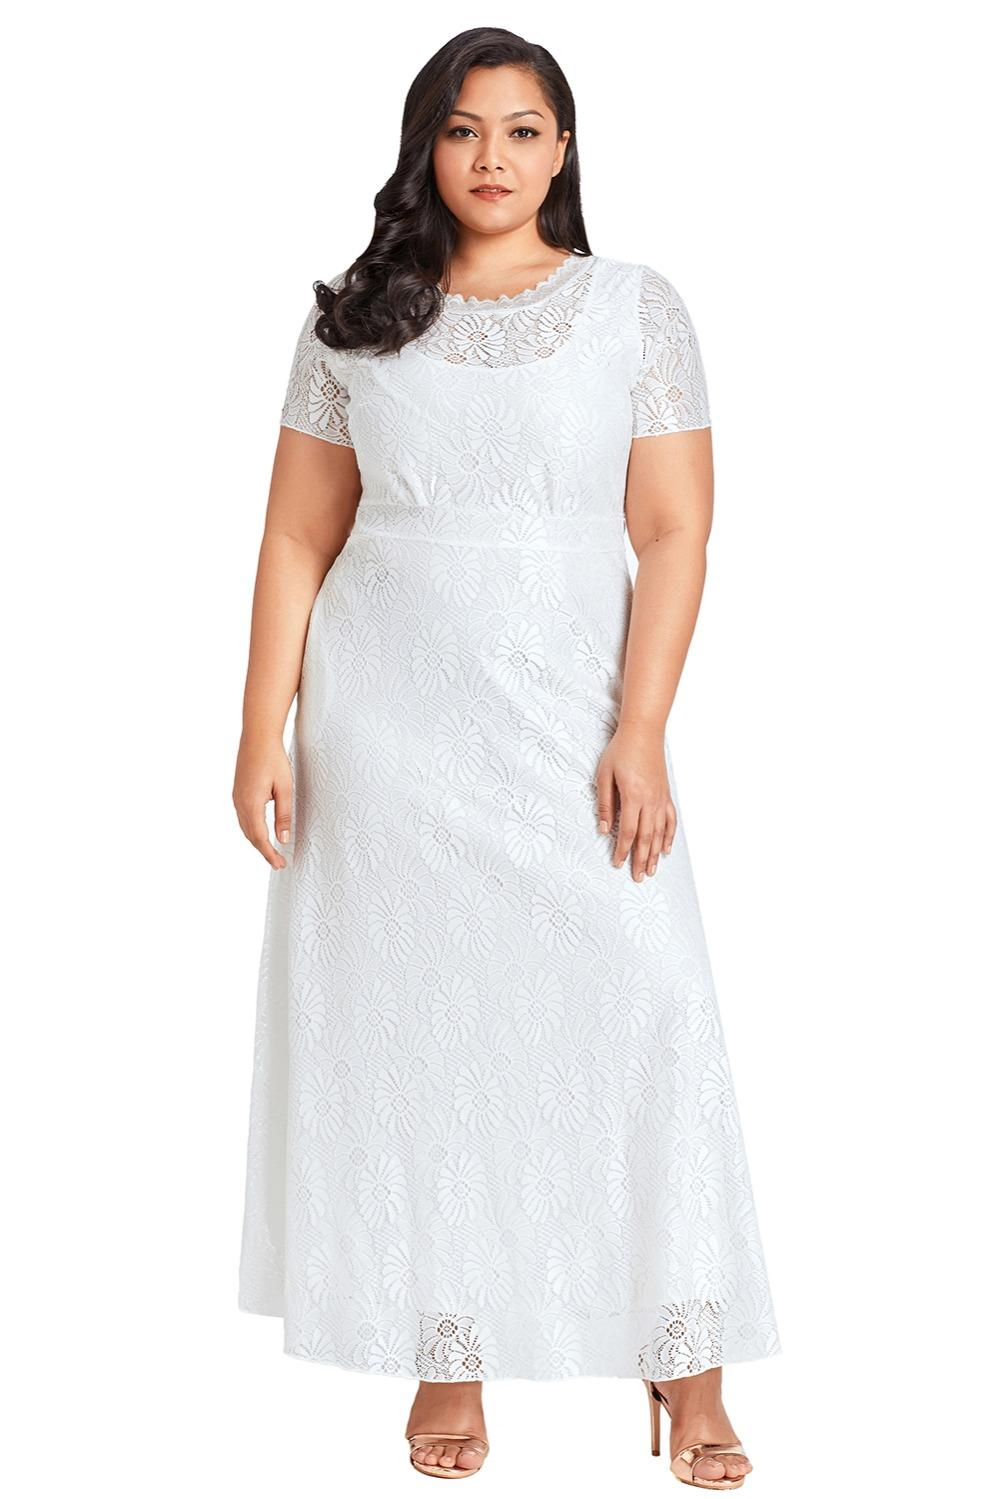 New Plus Size Lace Long White Summer Dress 2018 Women Party Gown ...